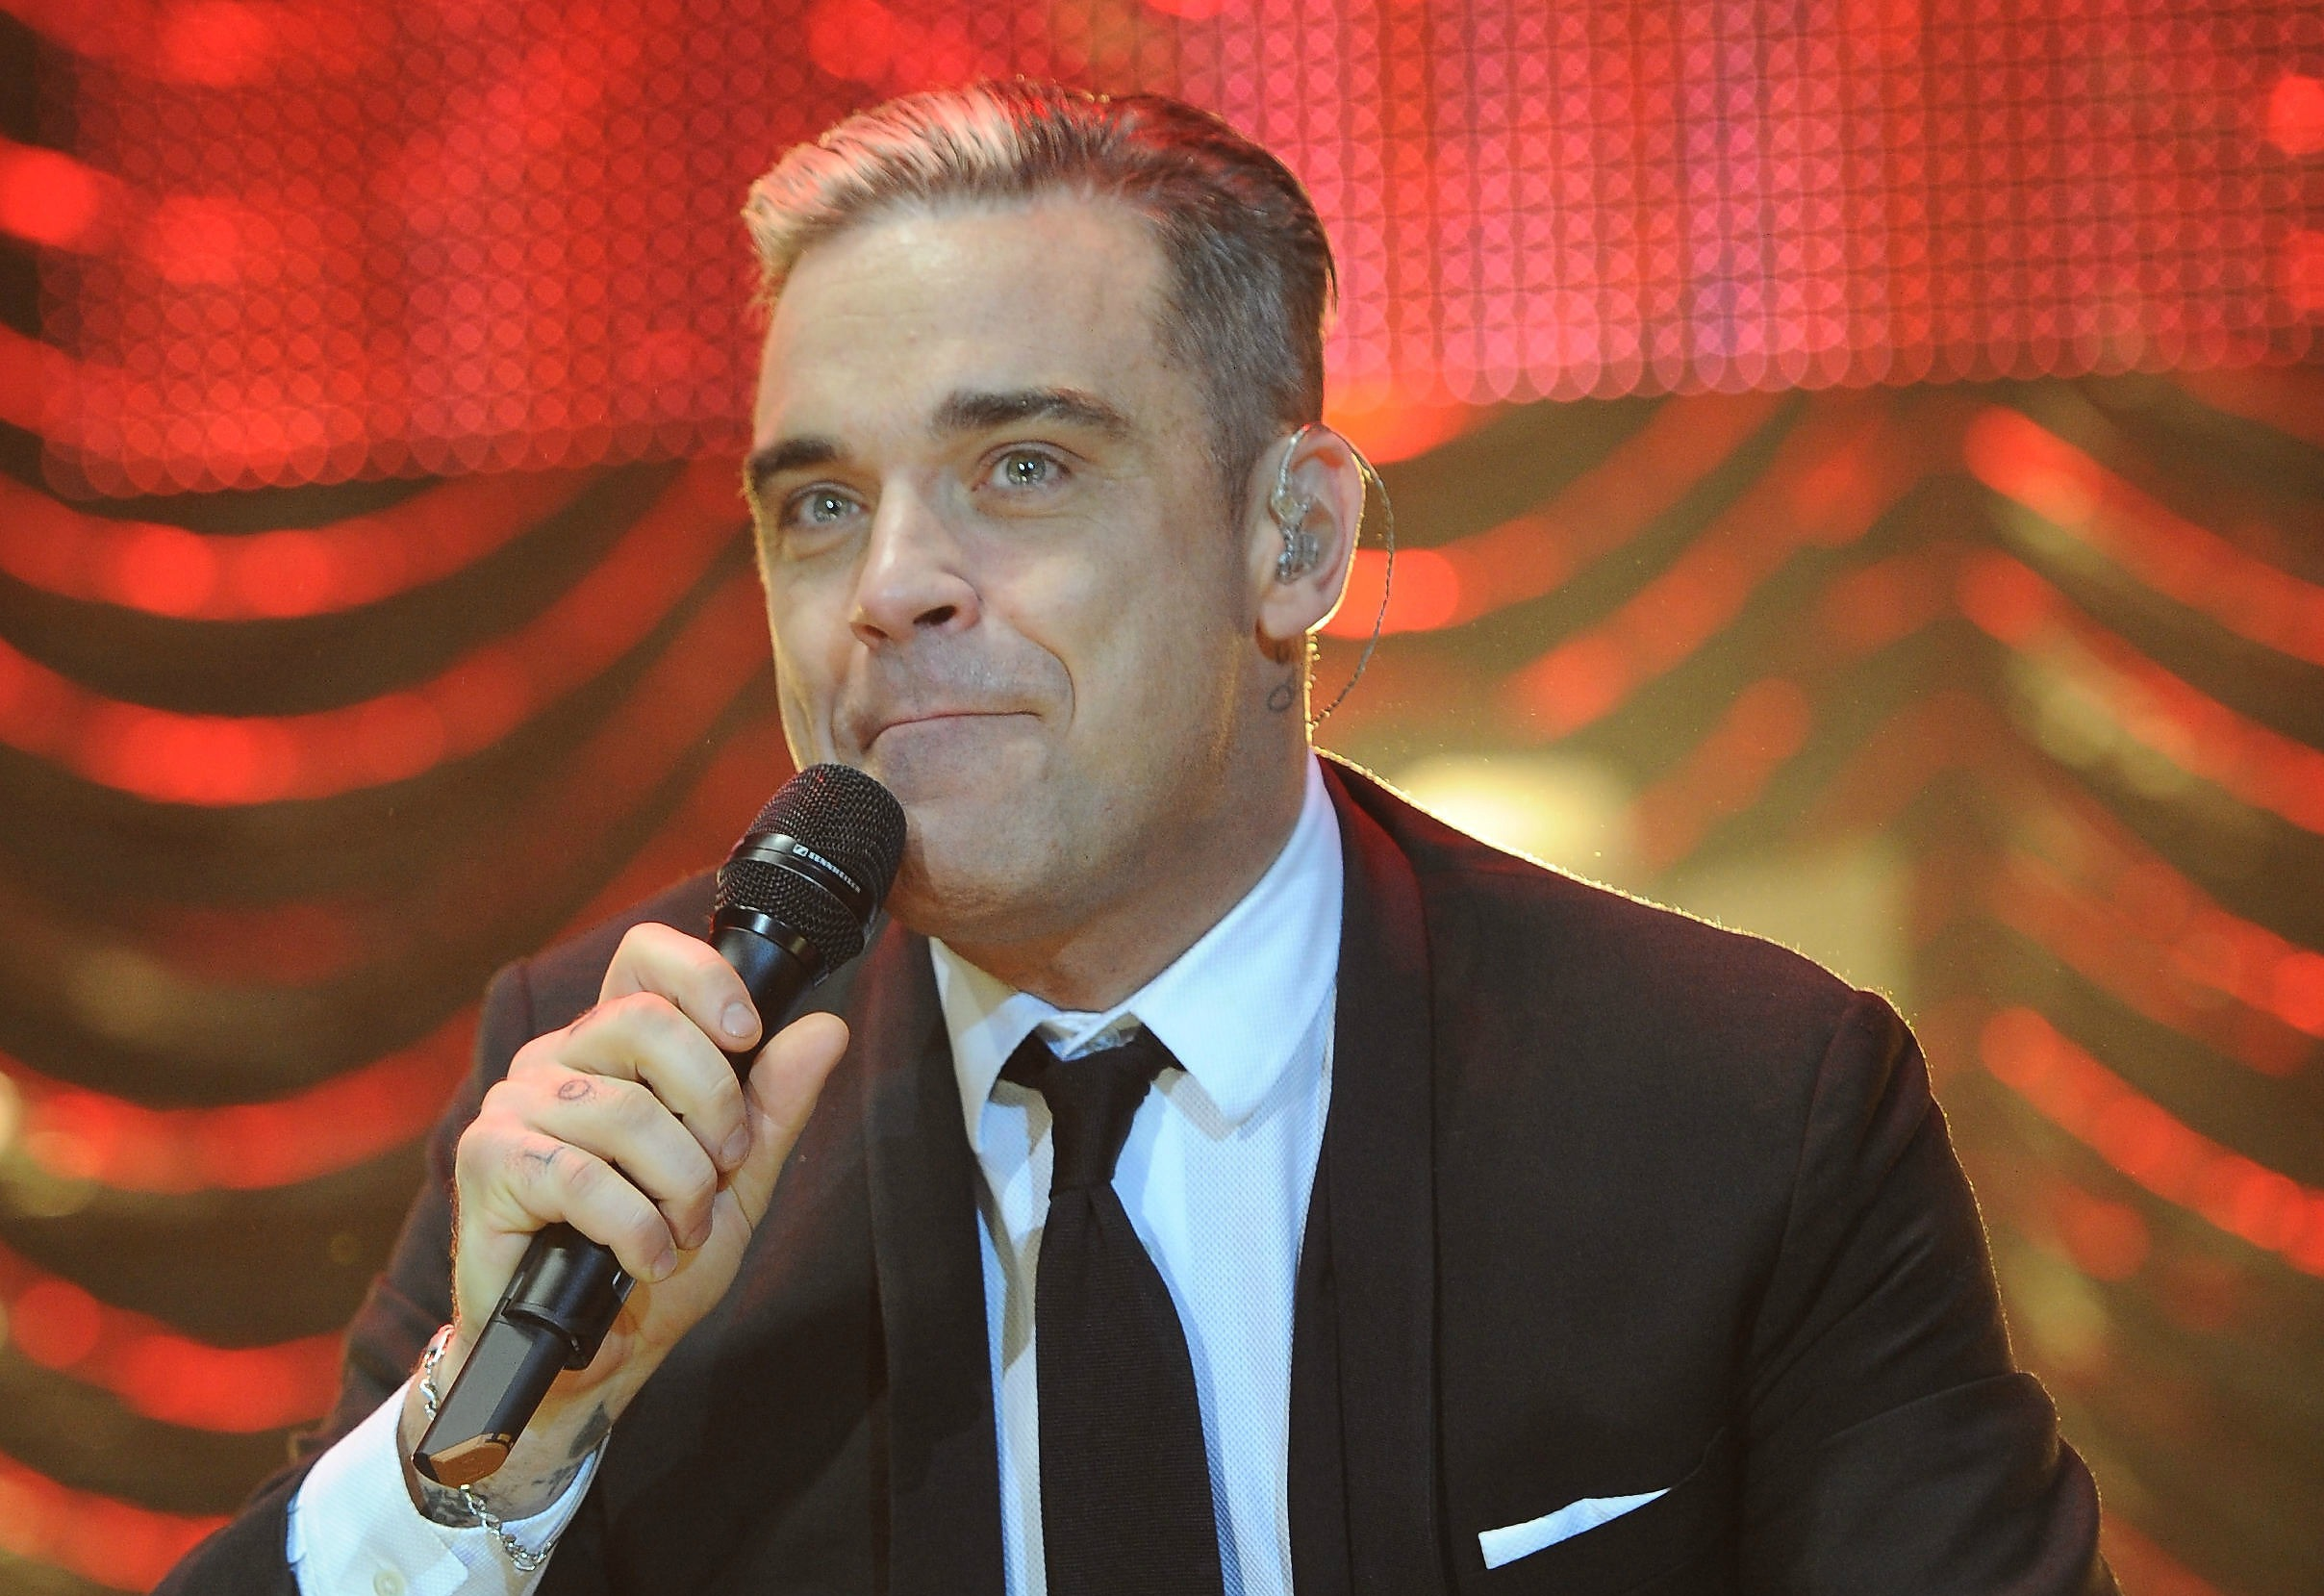 Robbie Williams is going to be a father for the second time